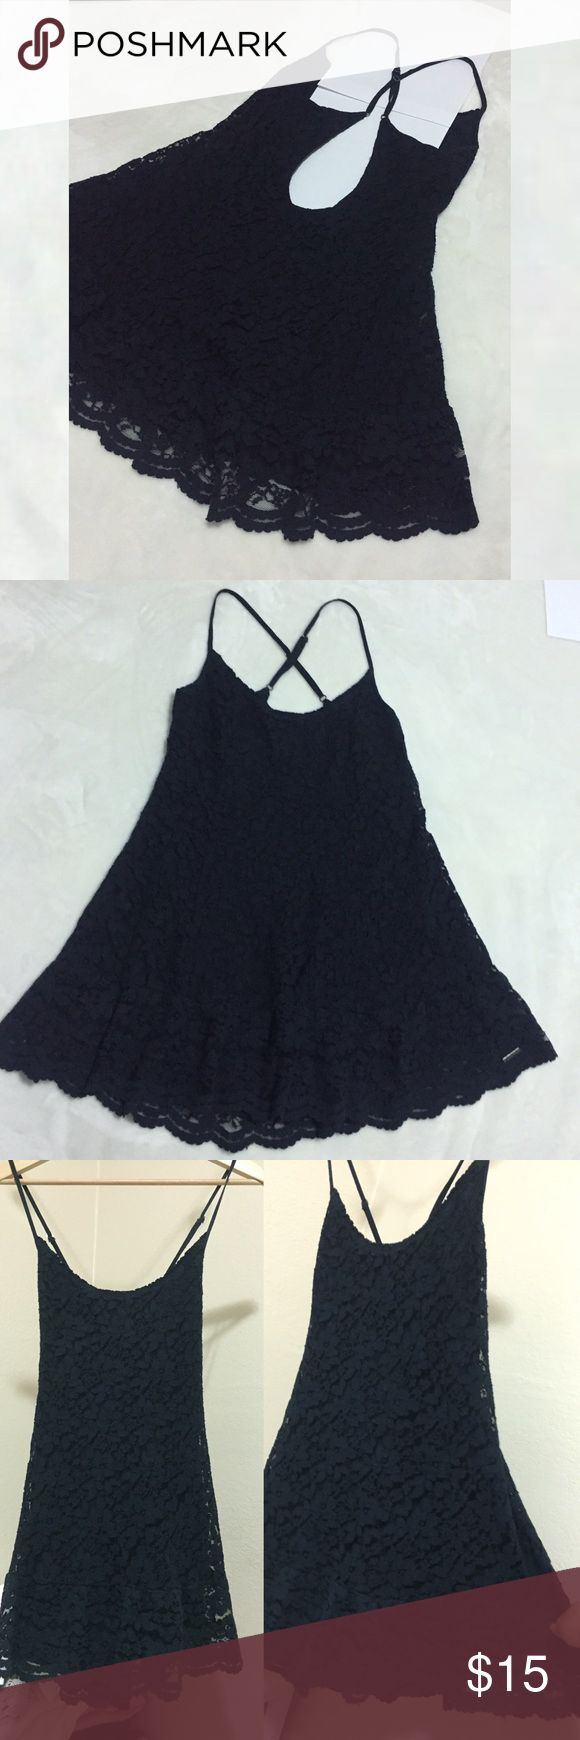 Abercrombie and Fitch lace dress Navy blue Abercrombie and Fitch flowy dress with back cutout. Has adjustable straps with the logo (3rd picture) as well as the logo at the bottom of dress. Such a cute dress you could dress it up or down if you'd like. Wore it a couple times. Feel free to make an offer or bundle to save. No trades sorry Abercrombie & Fitch Dresses Midi